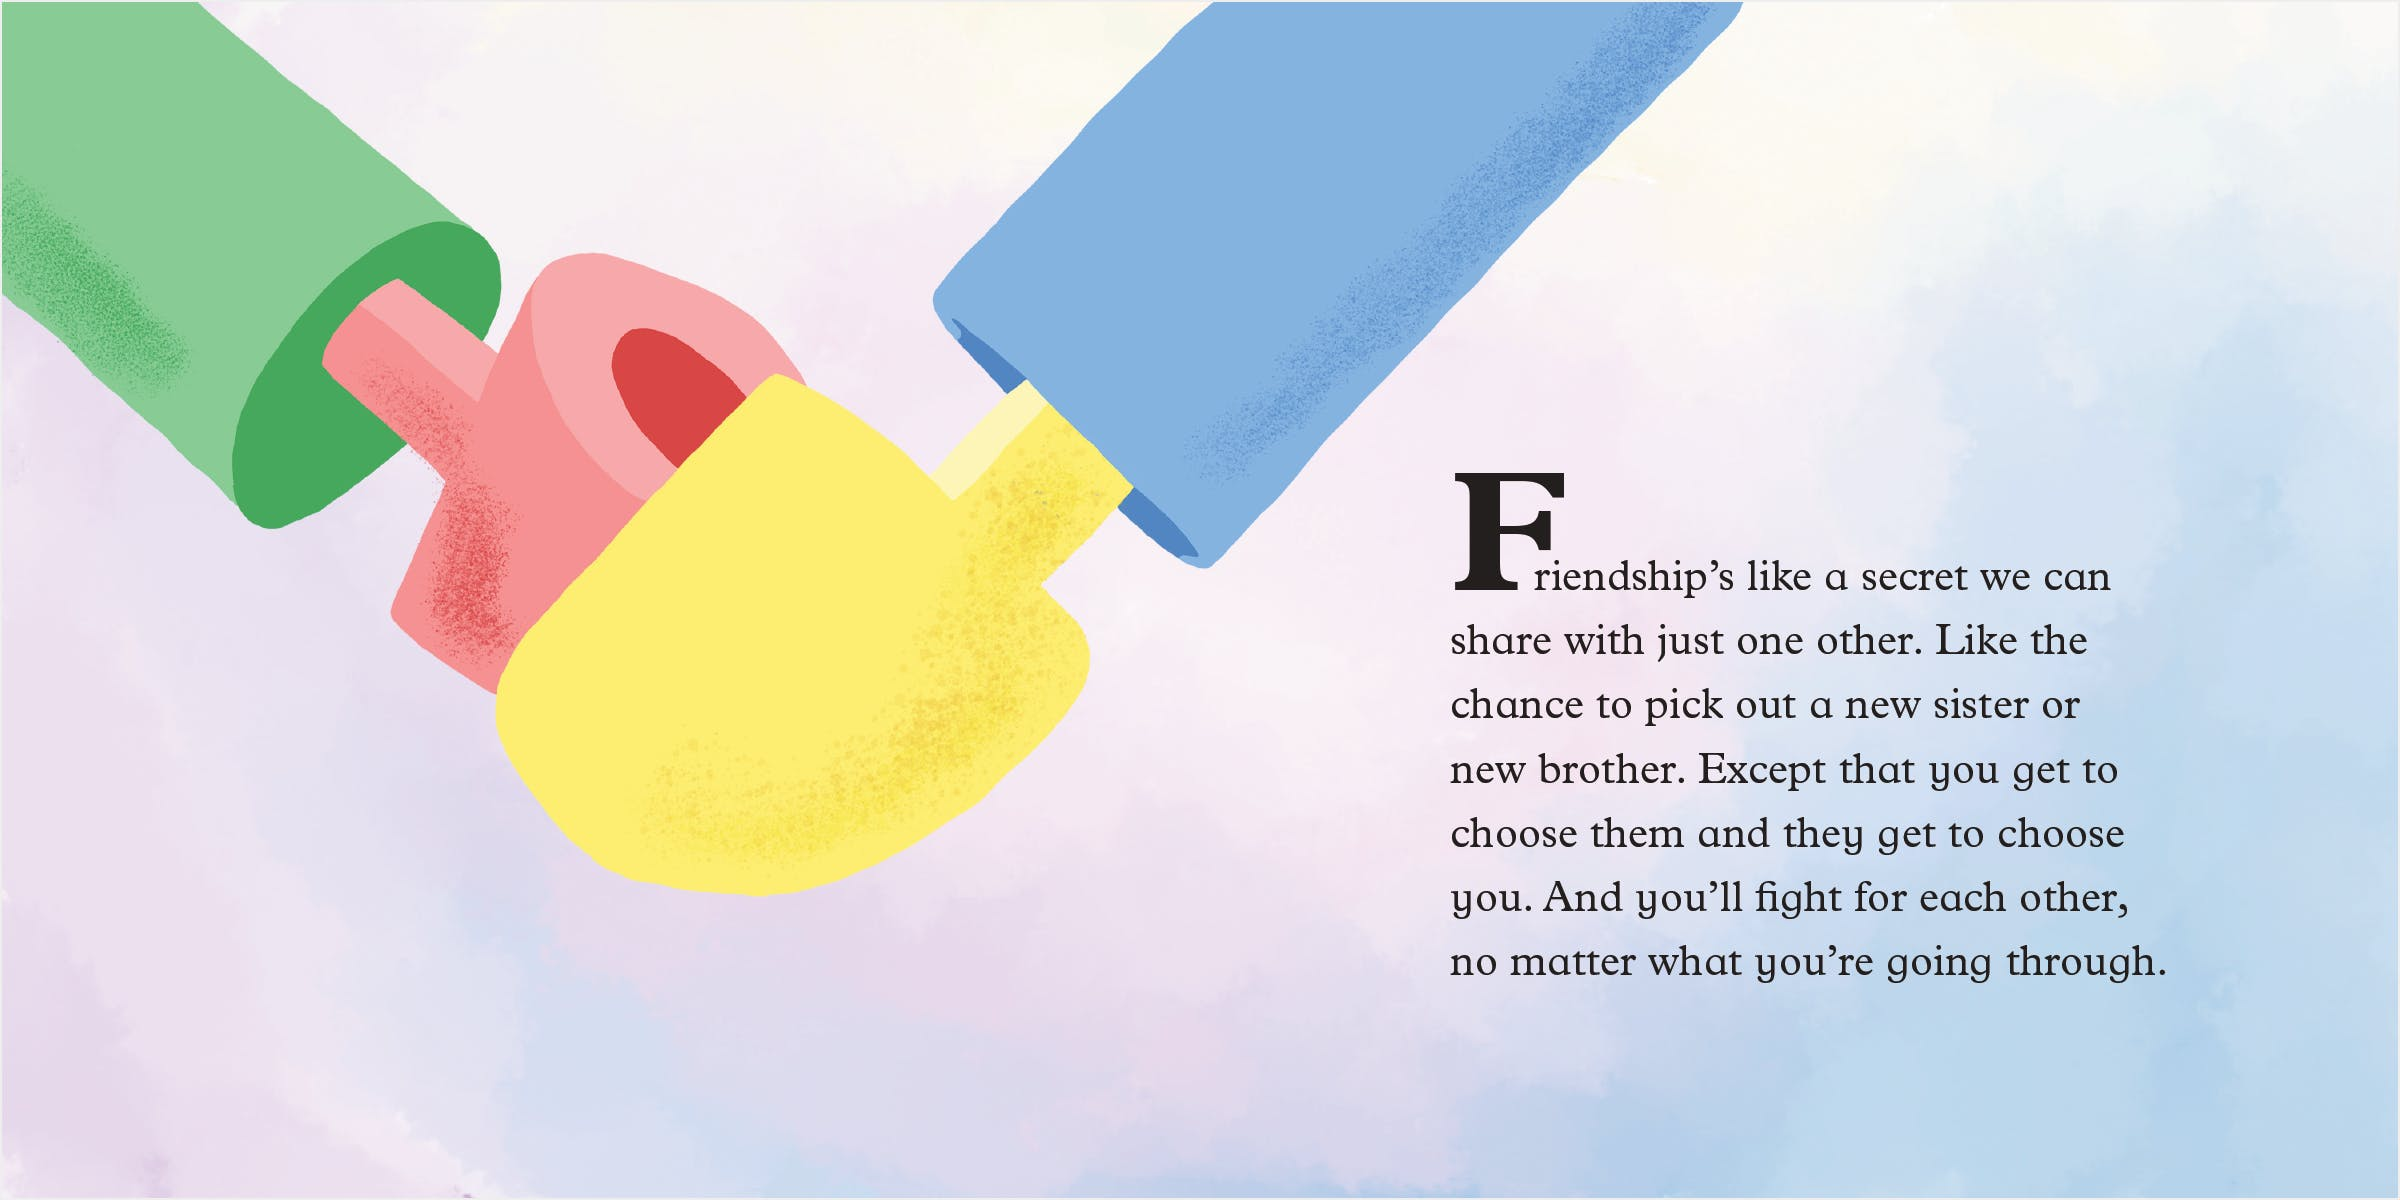 Full spread of friendship: an image of two different colored hands, holding hands.